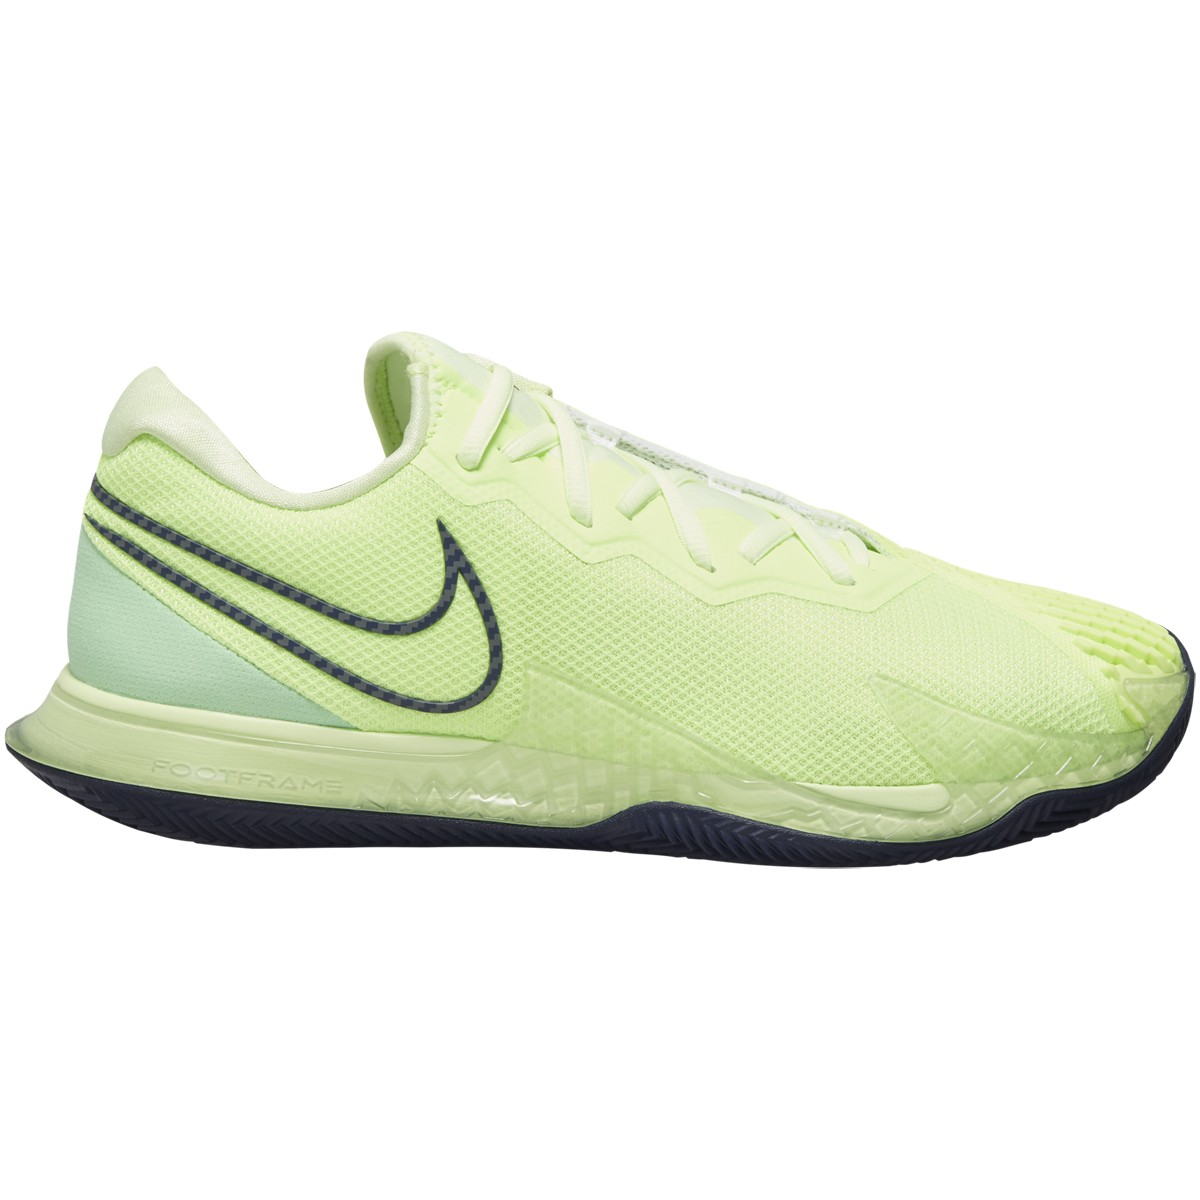 Chaussures nike air zoom vapor cage 4 terre battue